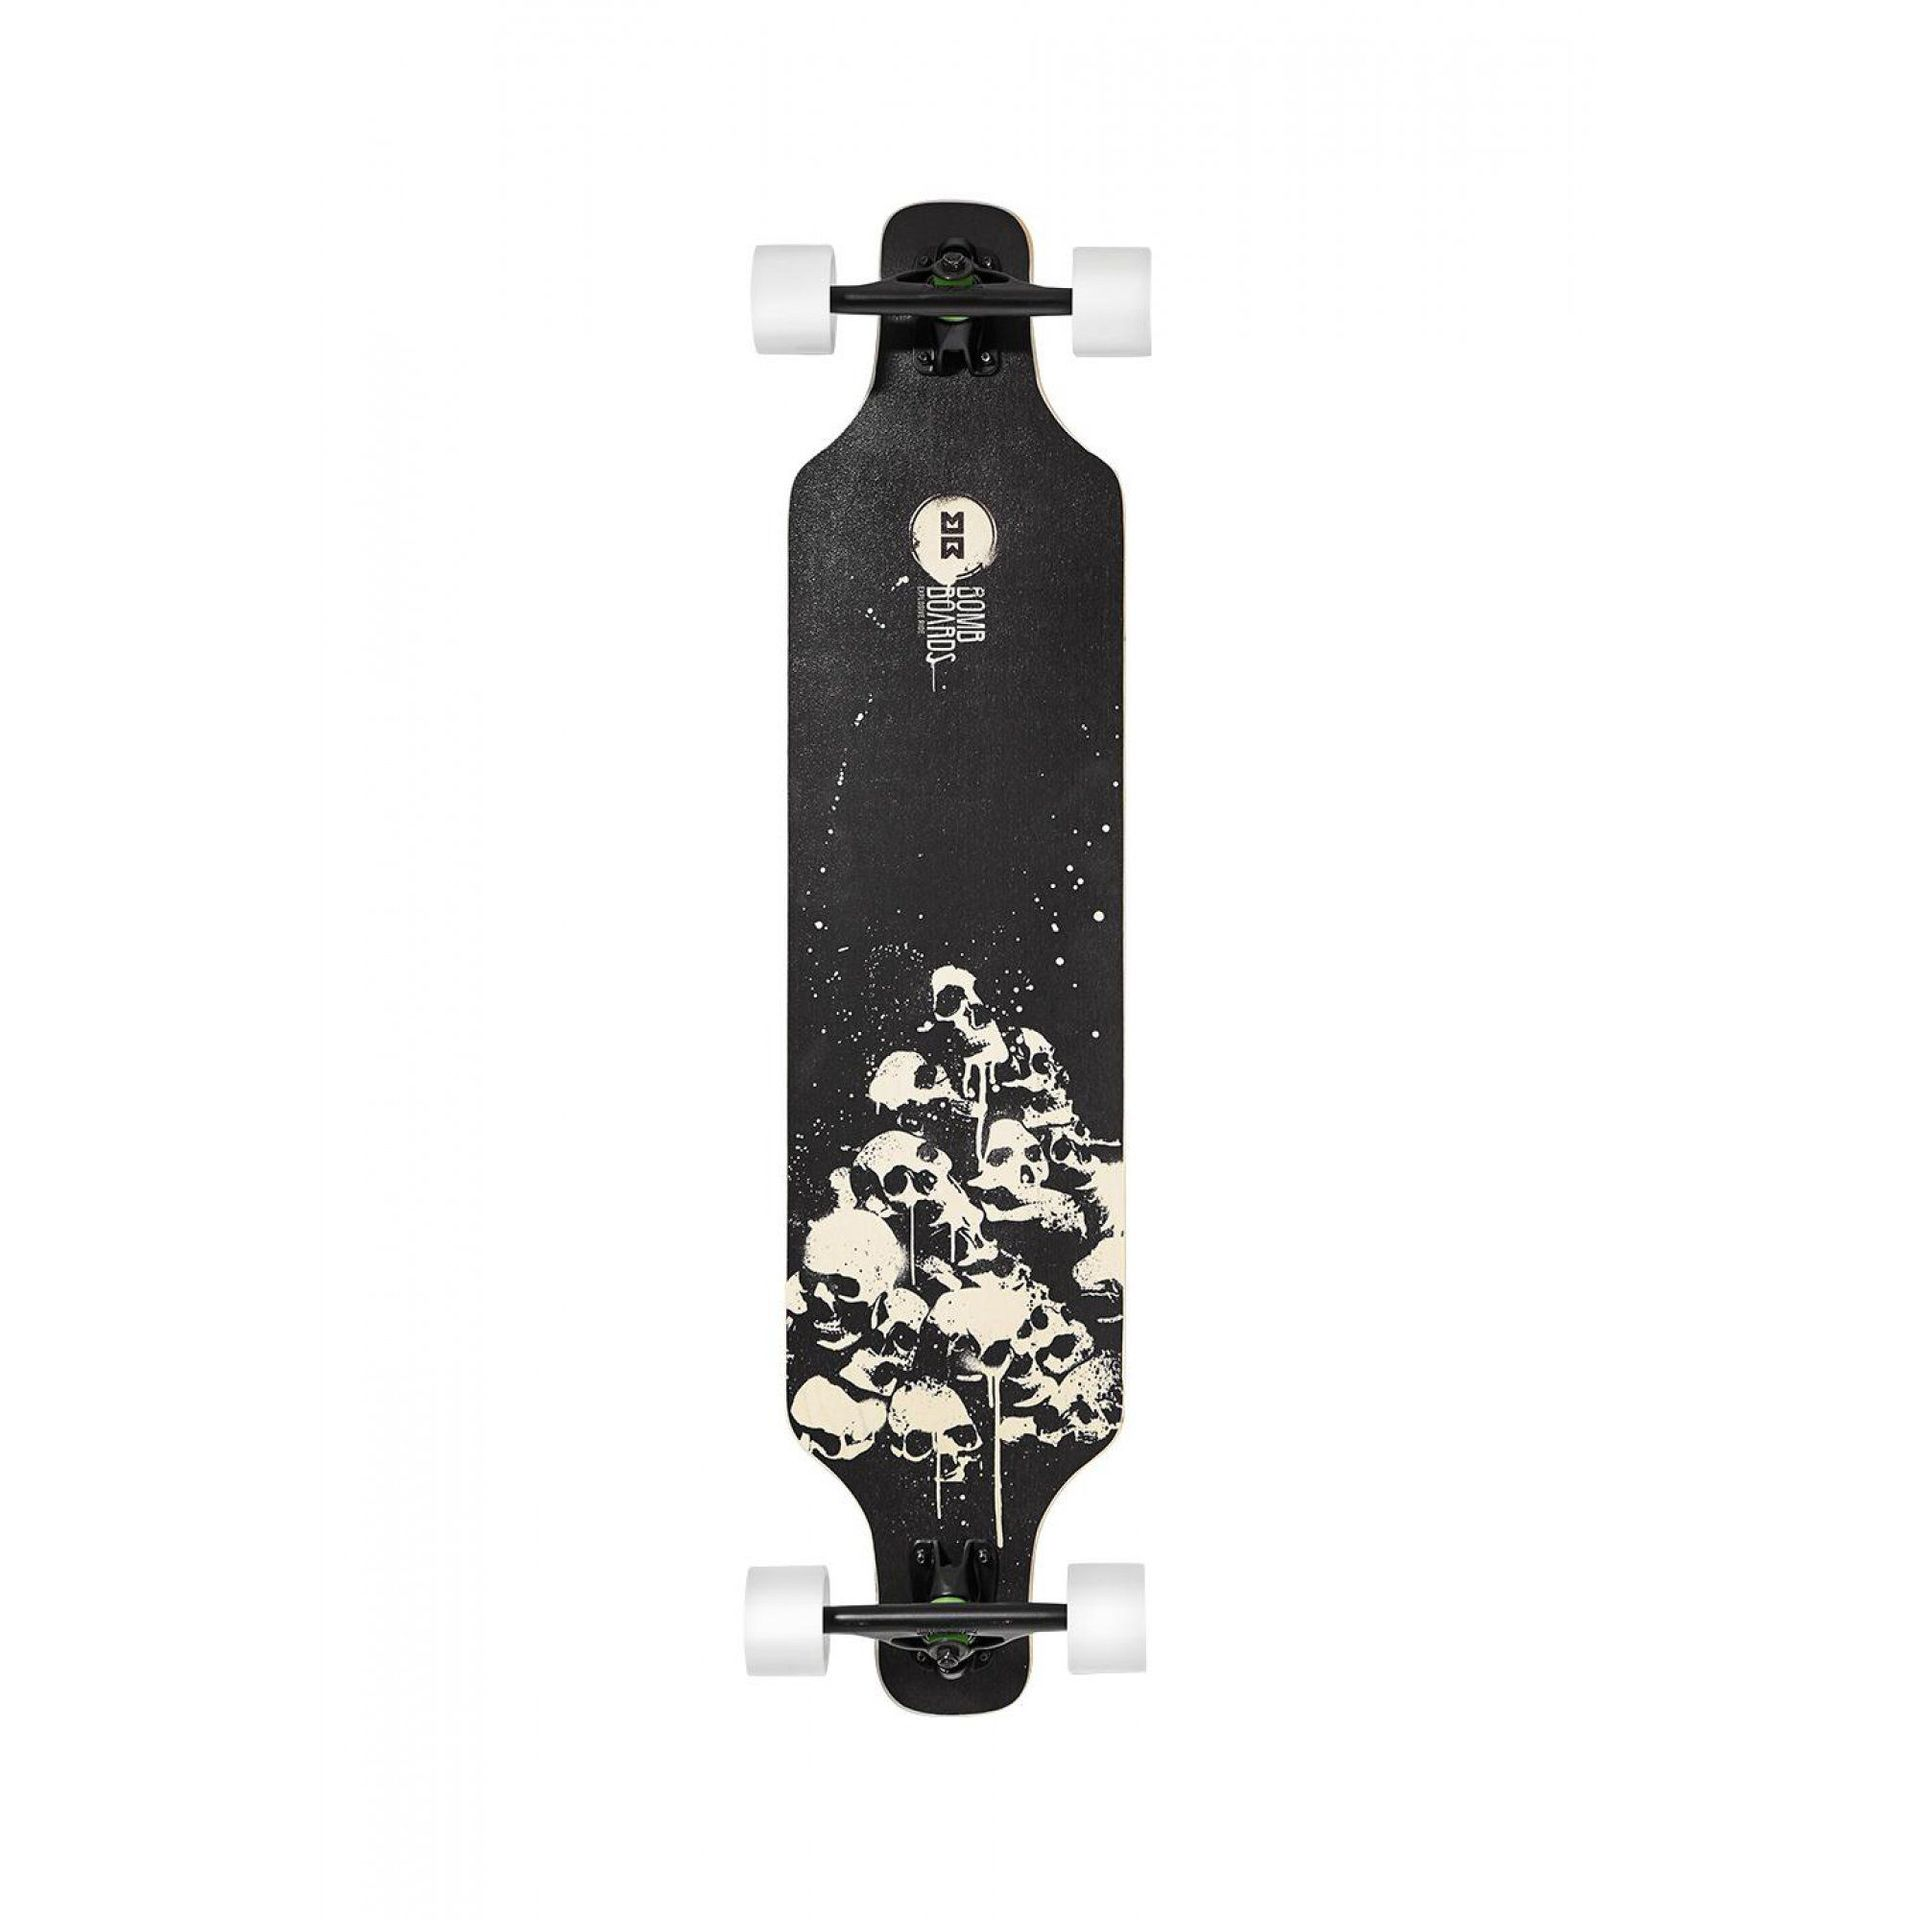 LONGBOARD BOMBBOARDS KILLER TWIN BLACK 1